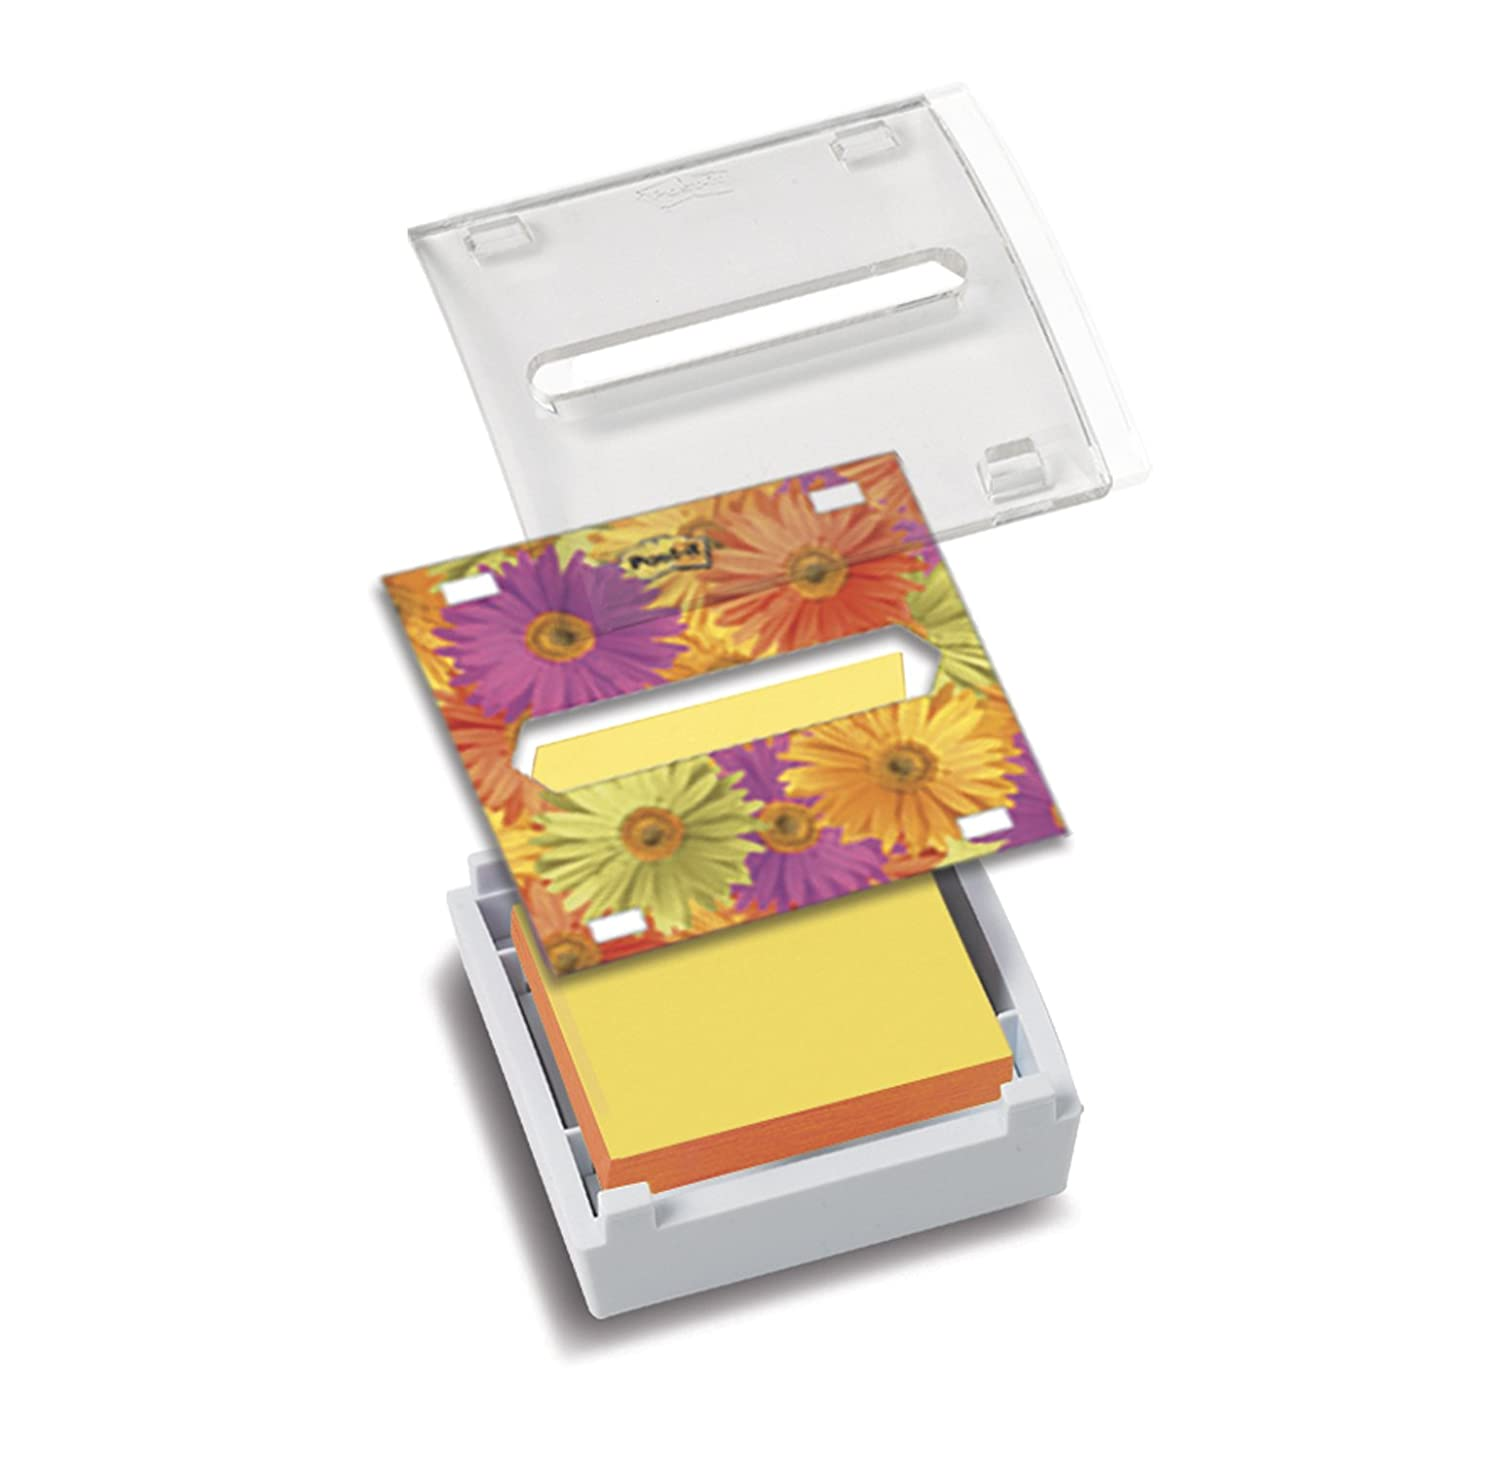 Self-Stick Note Pad Holders | Shop Amazon.com